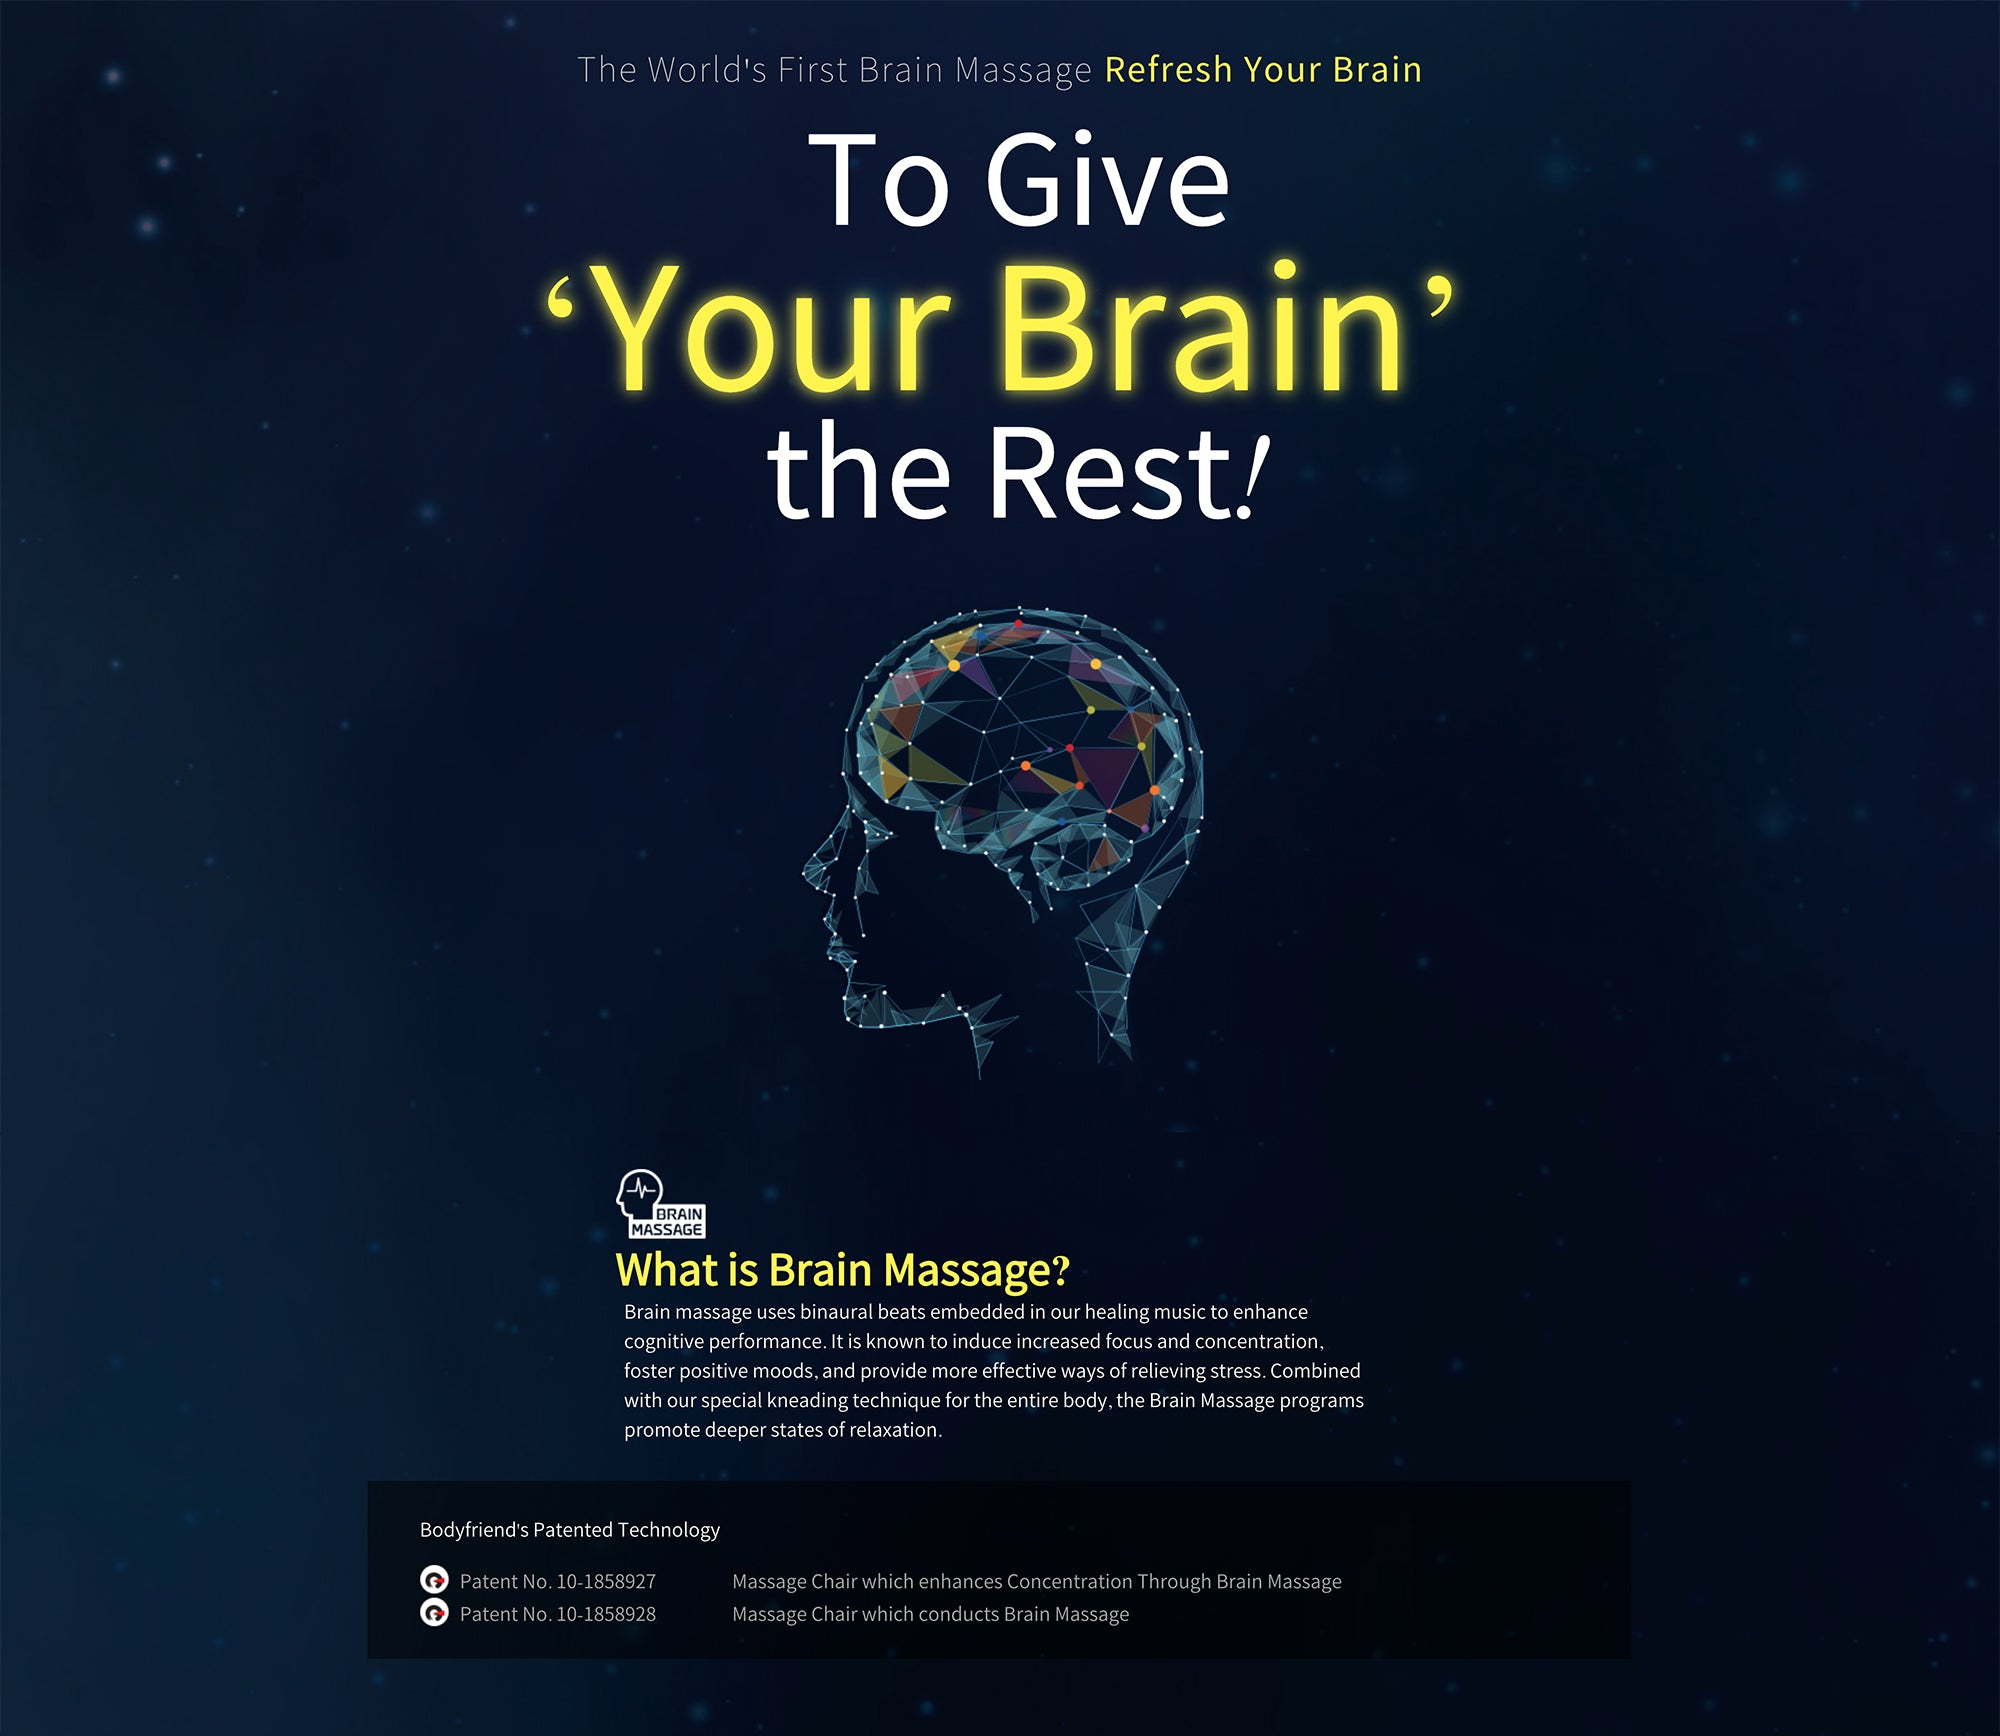 The World's First Brain Massage, Refresh Your Brain